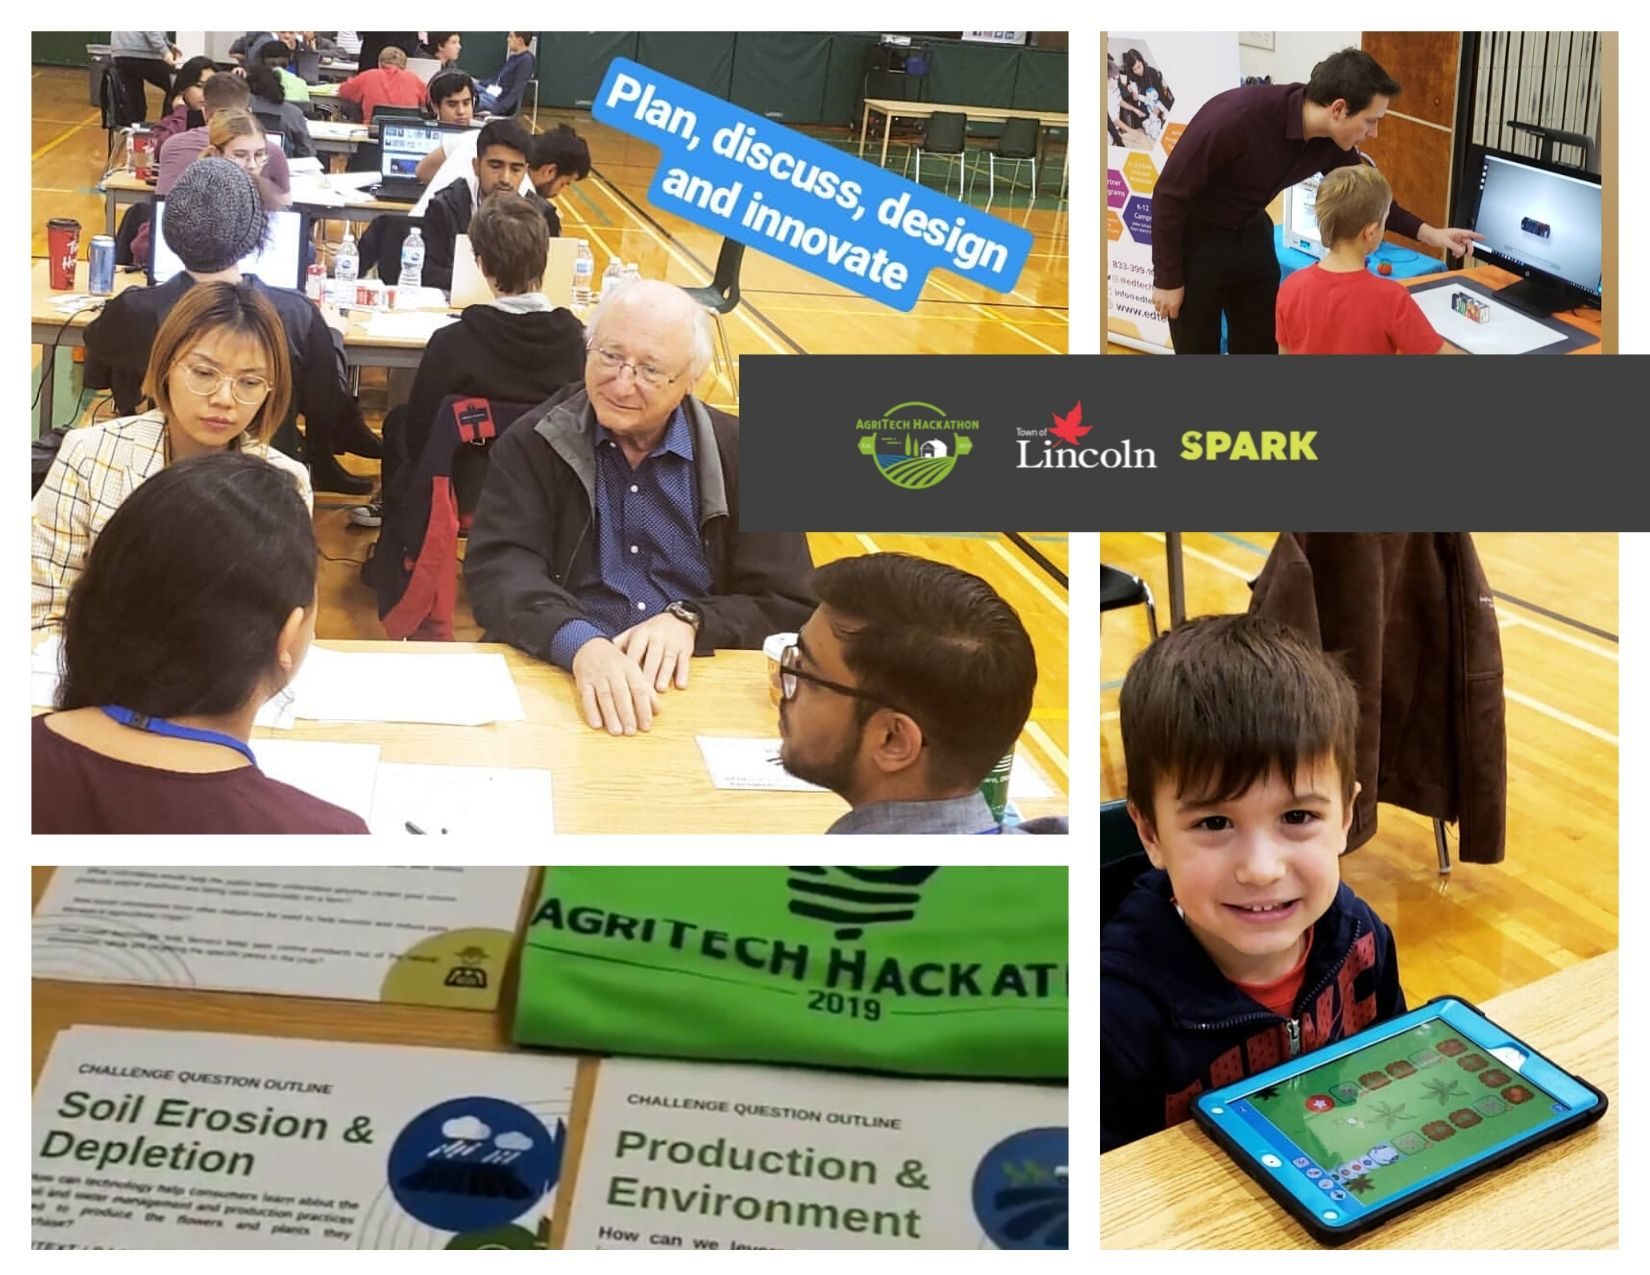 Beamsville AgriTech Hack-a-Thon